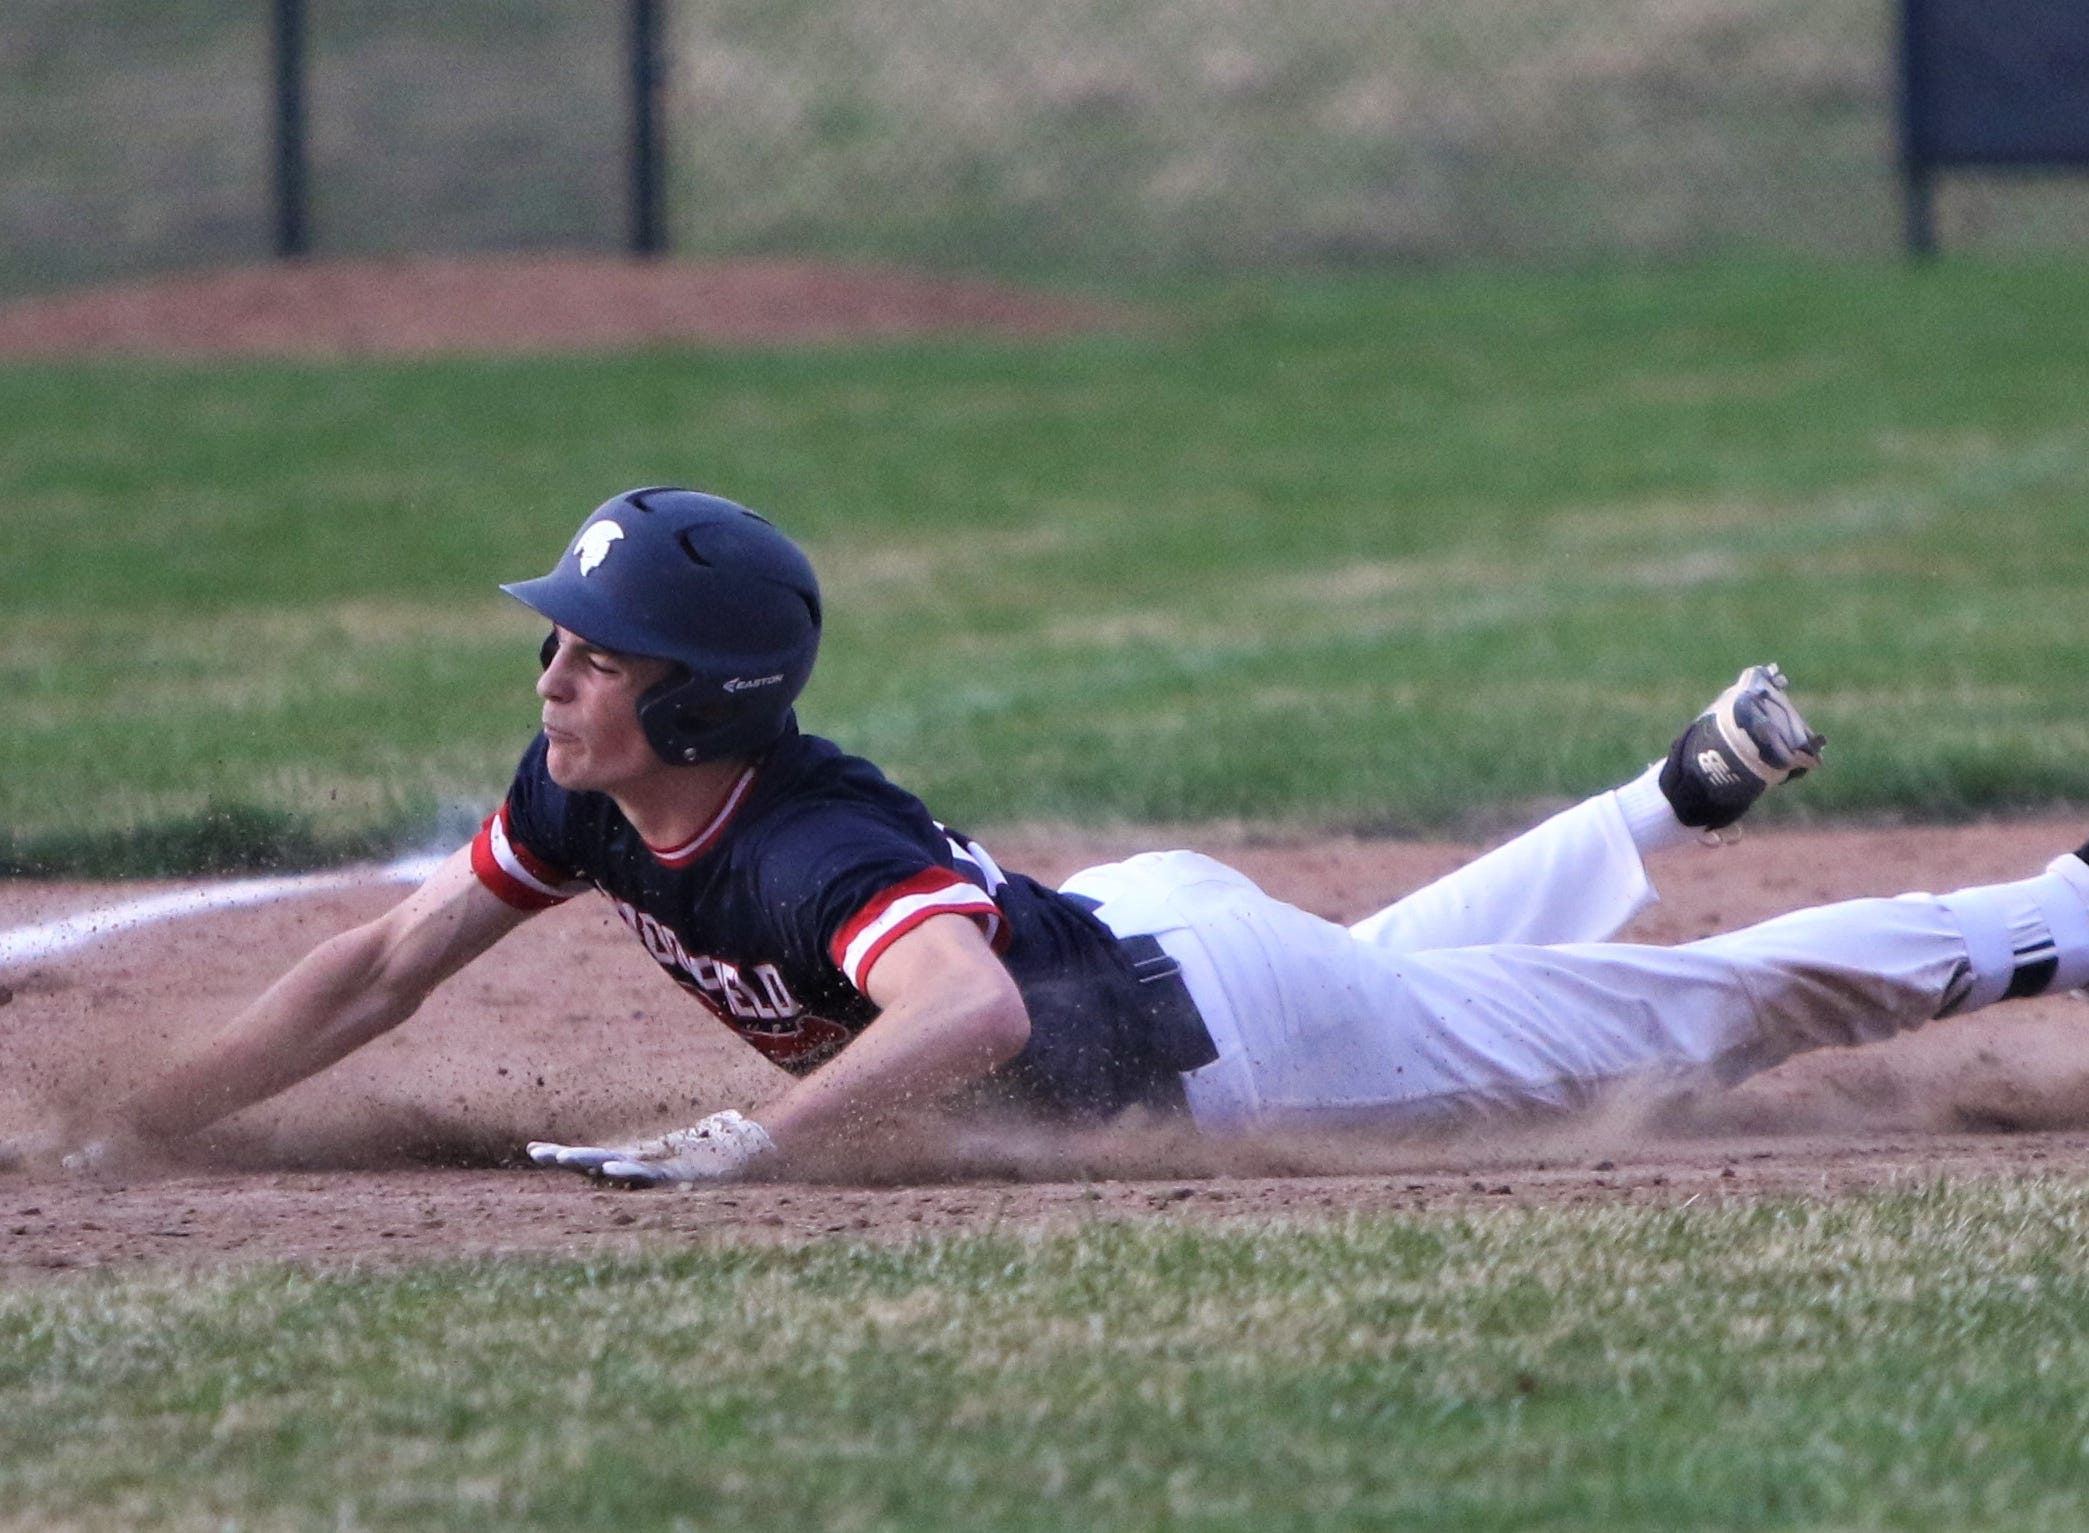 Brookfield East senior Ethan Toone slides into third base with a triple against Brookfield Academy on April 22, 2019.